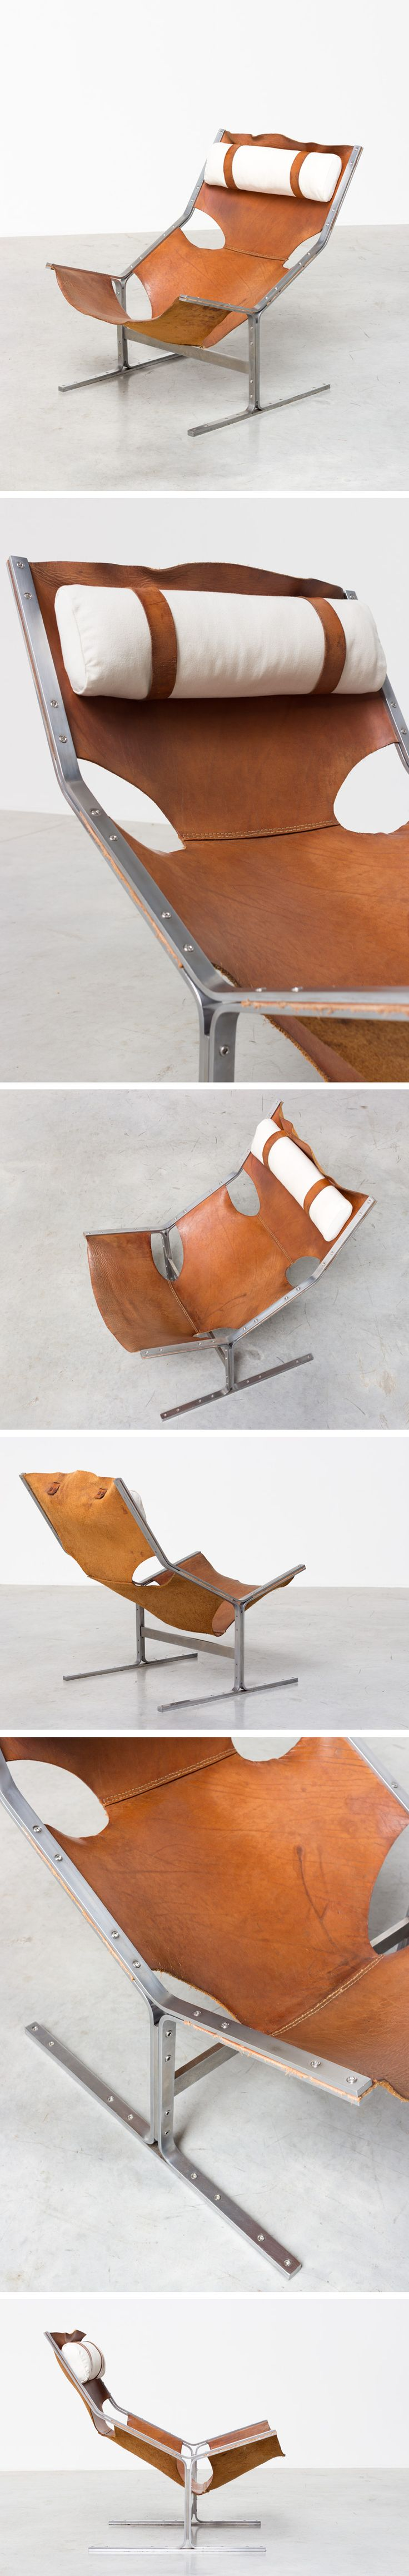 Modernist leather and steel lounge chair AP originals 1960 Large